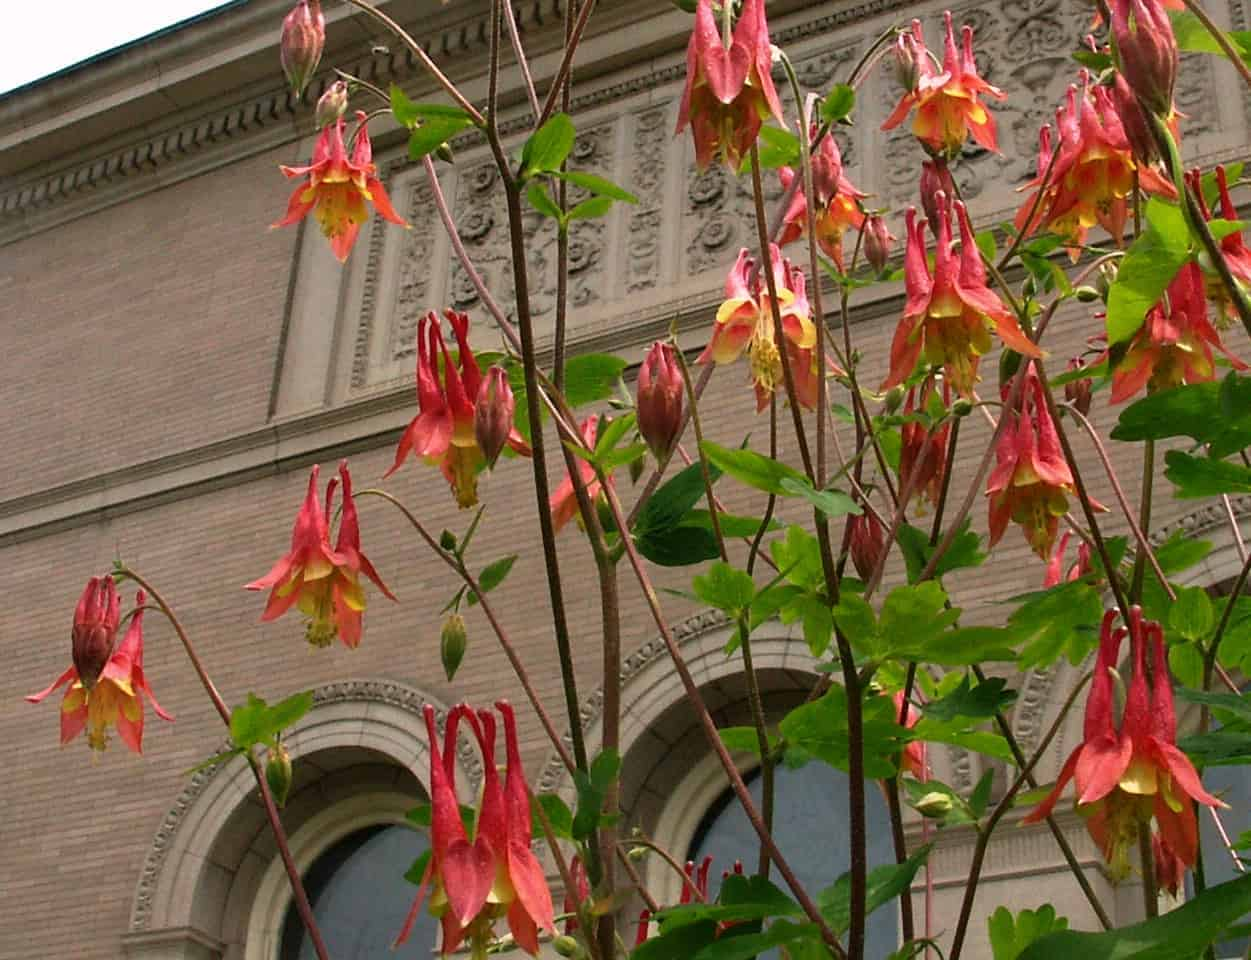 Columbine will bloom in full sun, even outside the Berkshire Museum. Photo by Thom Smith